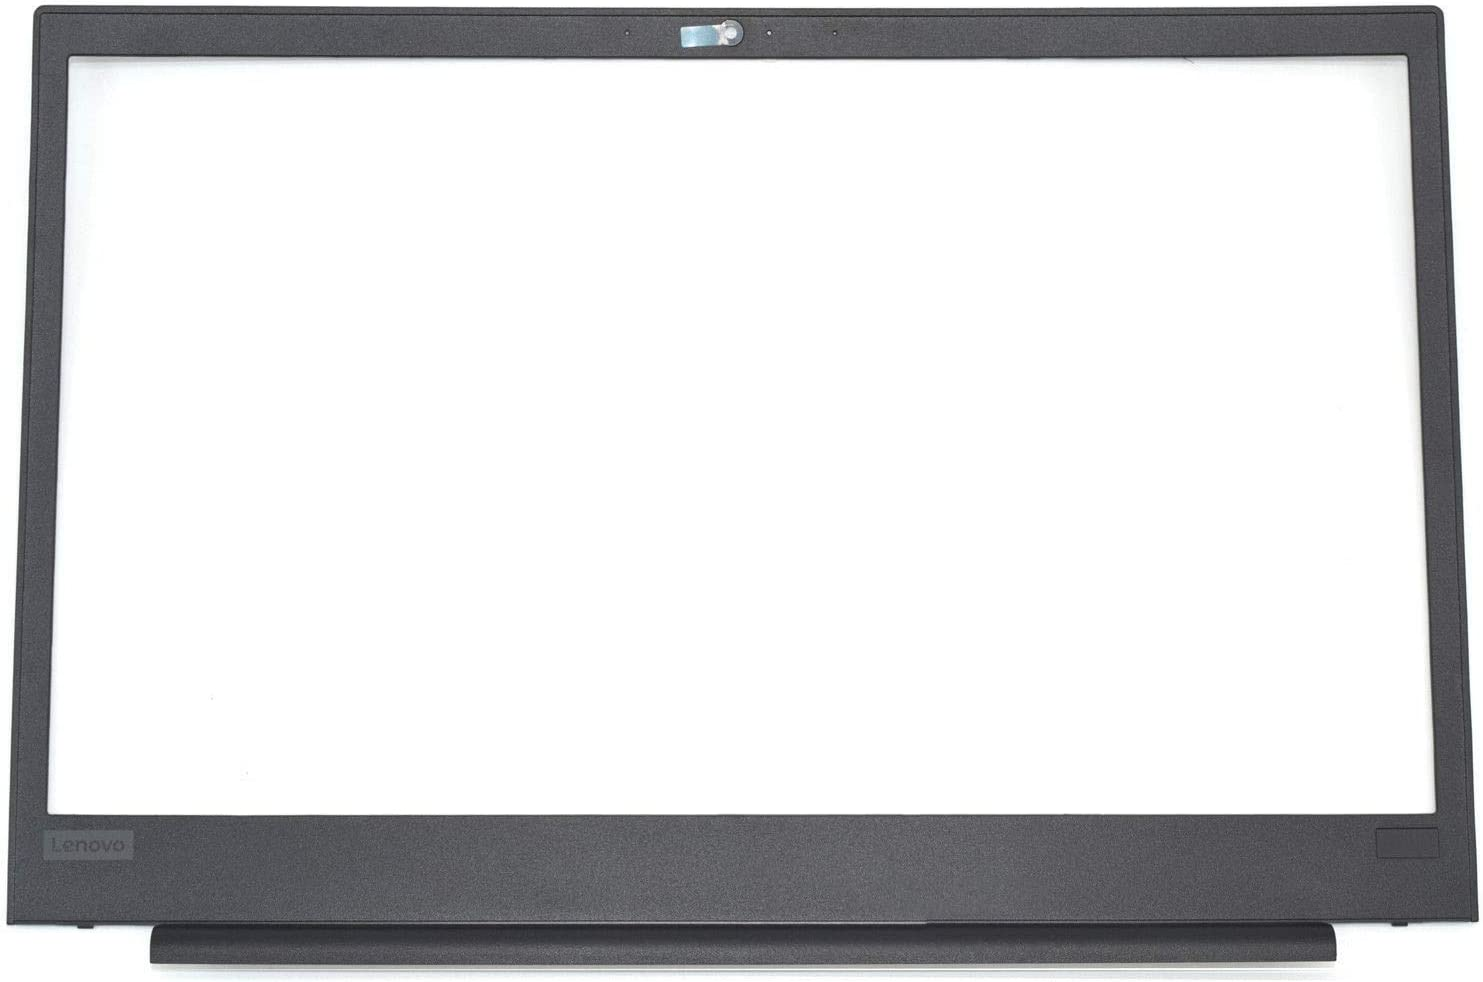 New Replacement for LCD Front Bezel Cover AP167000100 BLK for Lenovo ThinkPad E580 E585 E580C